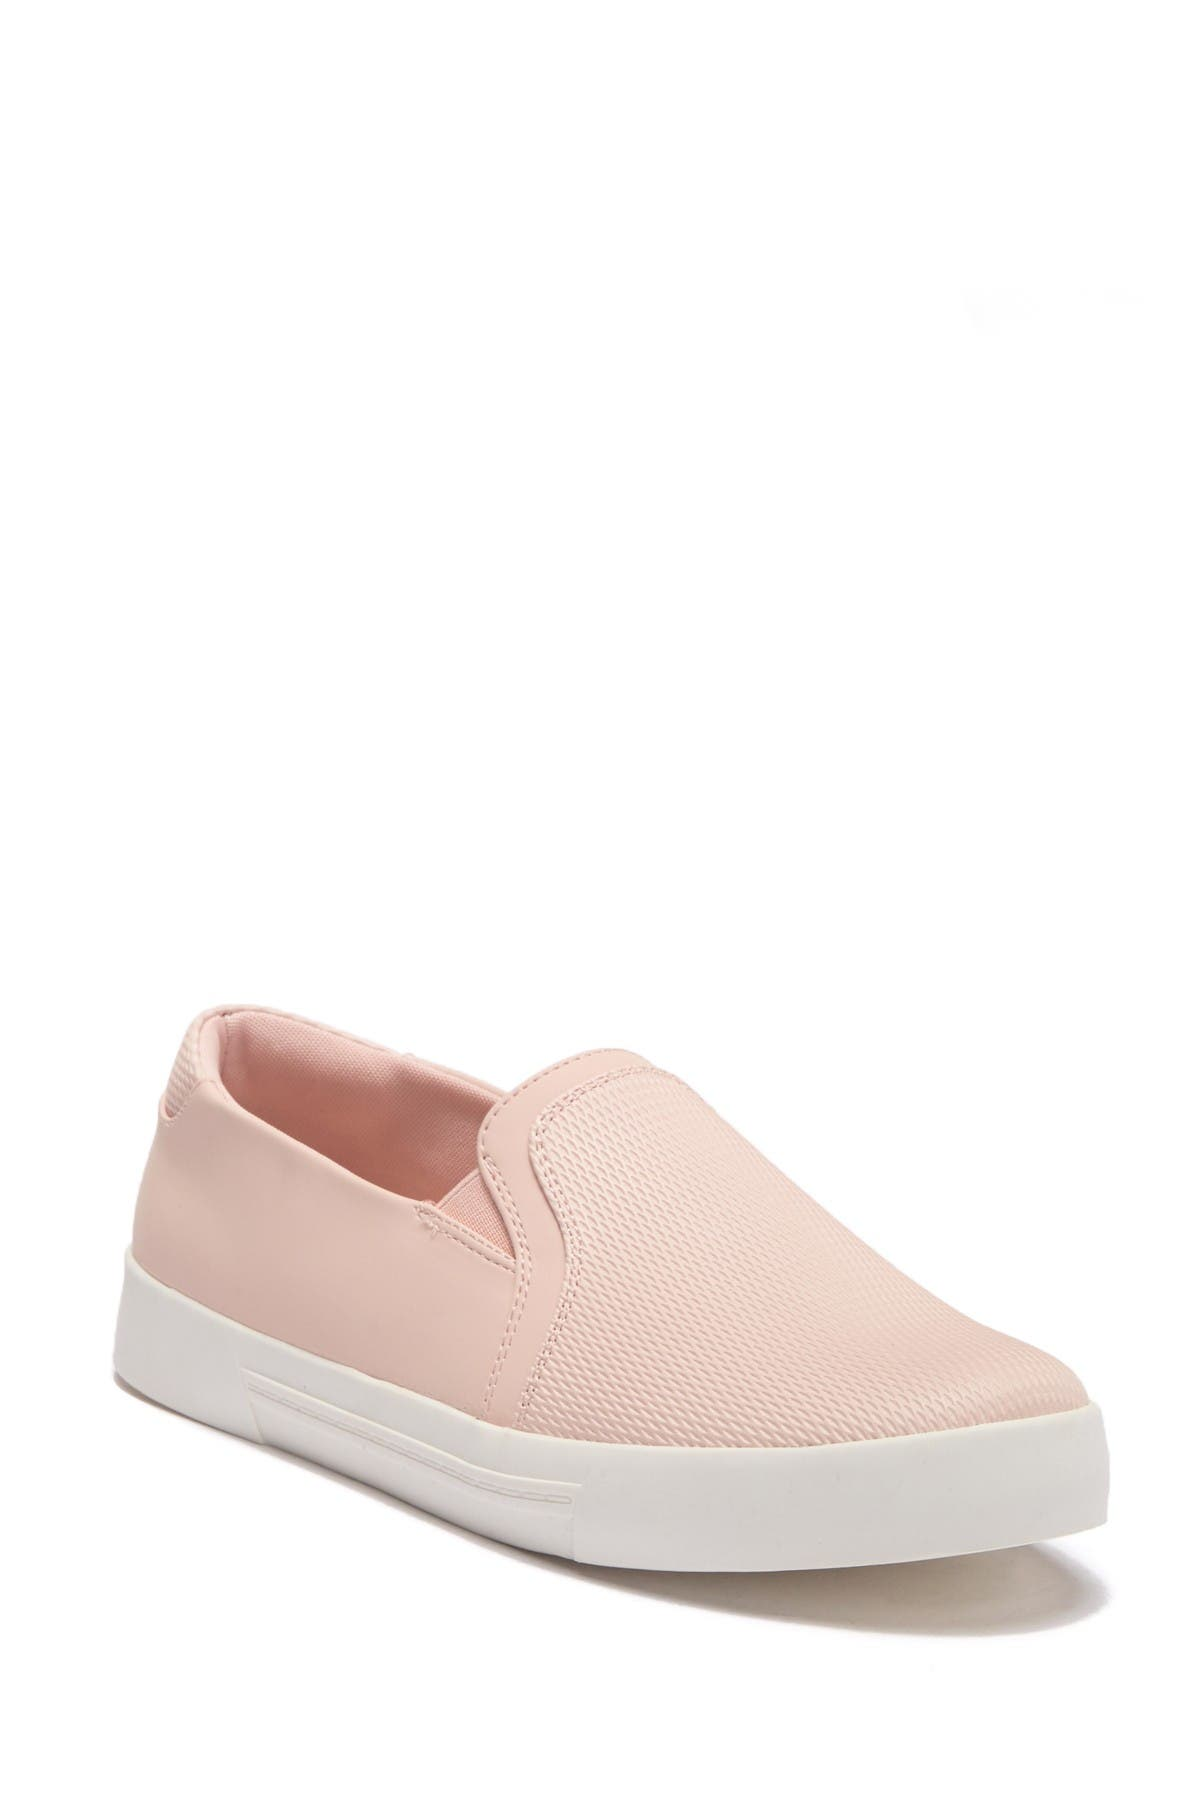 Call It Spring | Northelle Slip-On